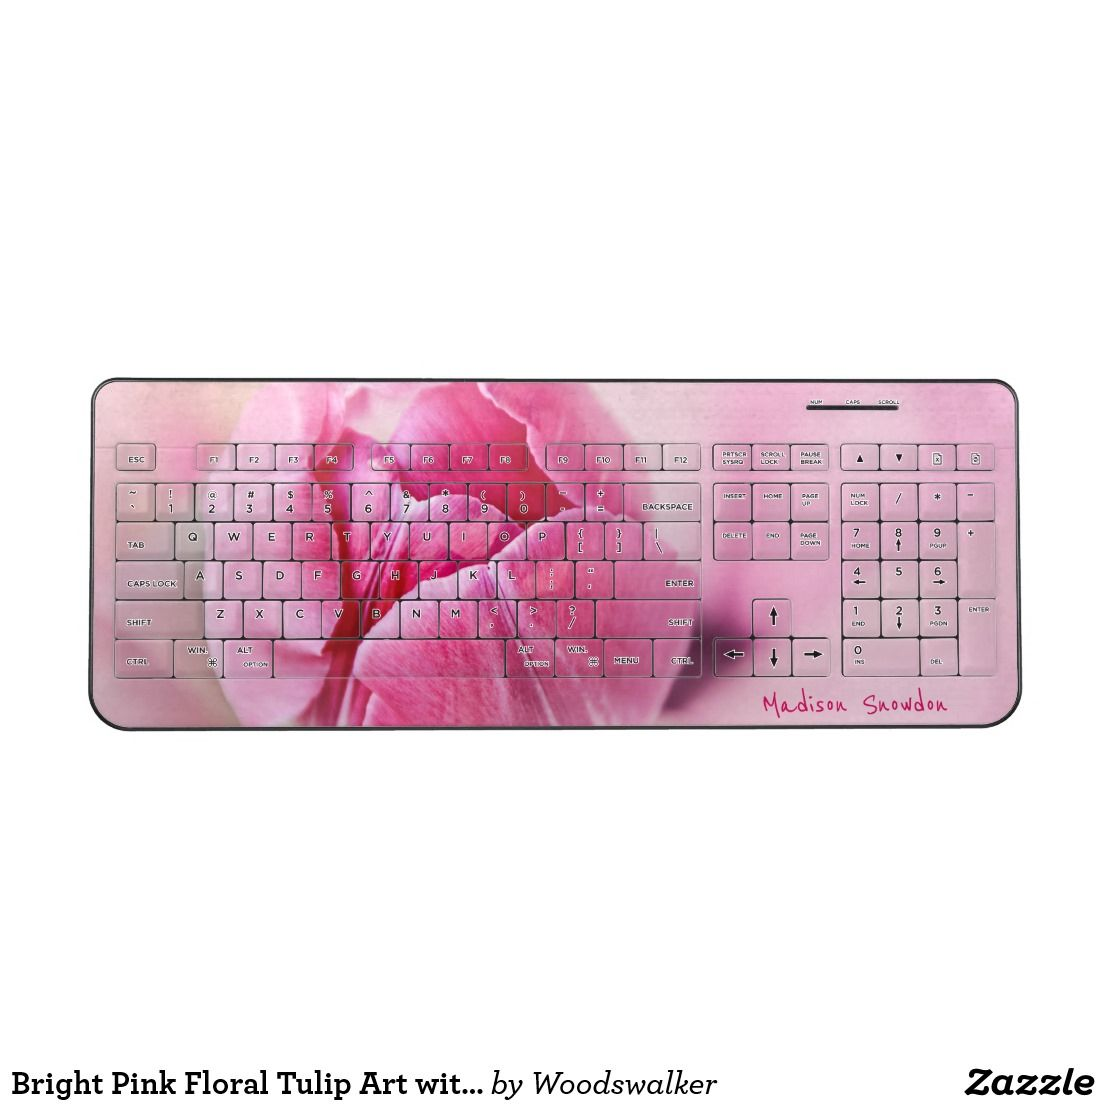 Bright Pink Floral Tulip Art with your Name Wireless Keyboard #GiftsForHer #MothersDayGifts